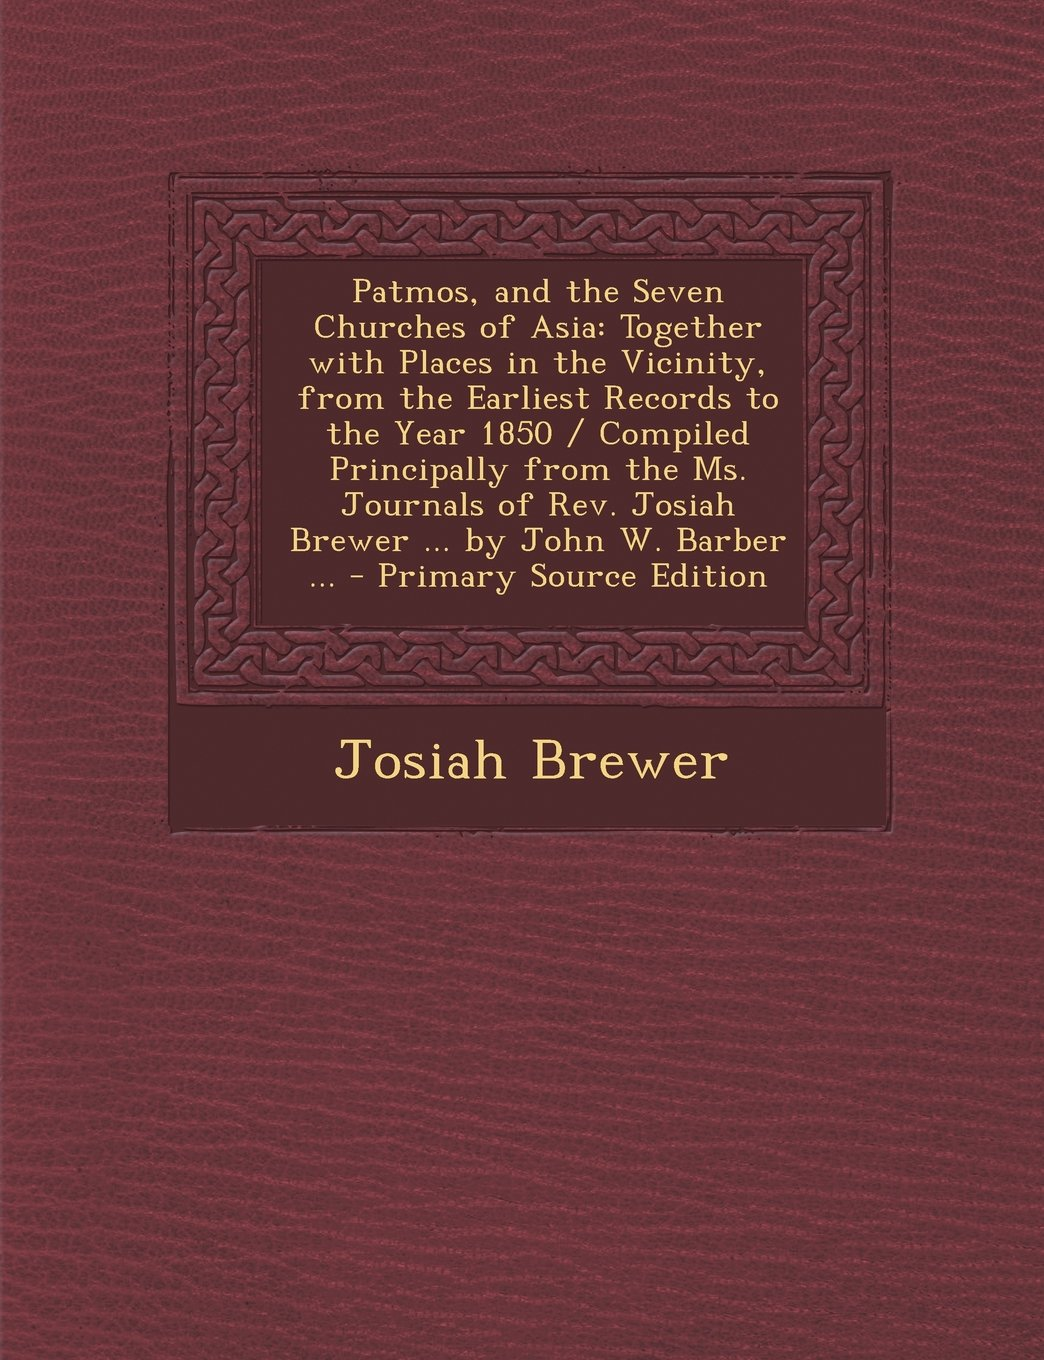 Patmos, and the Seven Churches of Asia: Together with Places in the Vicinity, from the Earliest Records to the Year 1850 / Compiled Principally from T pdf